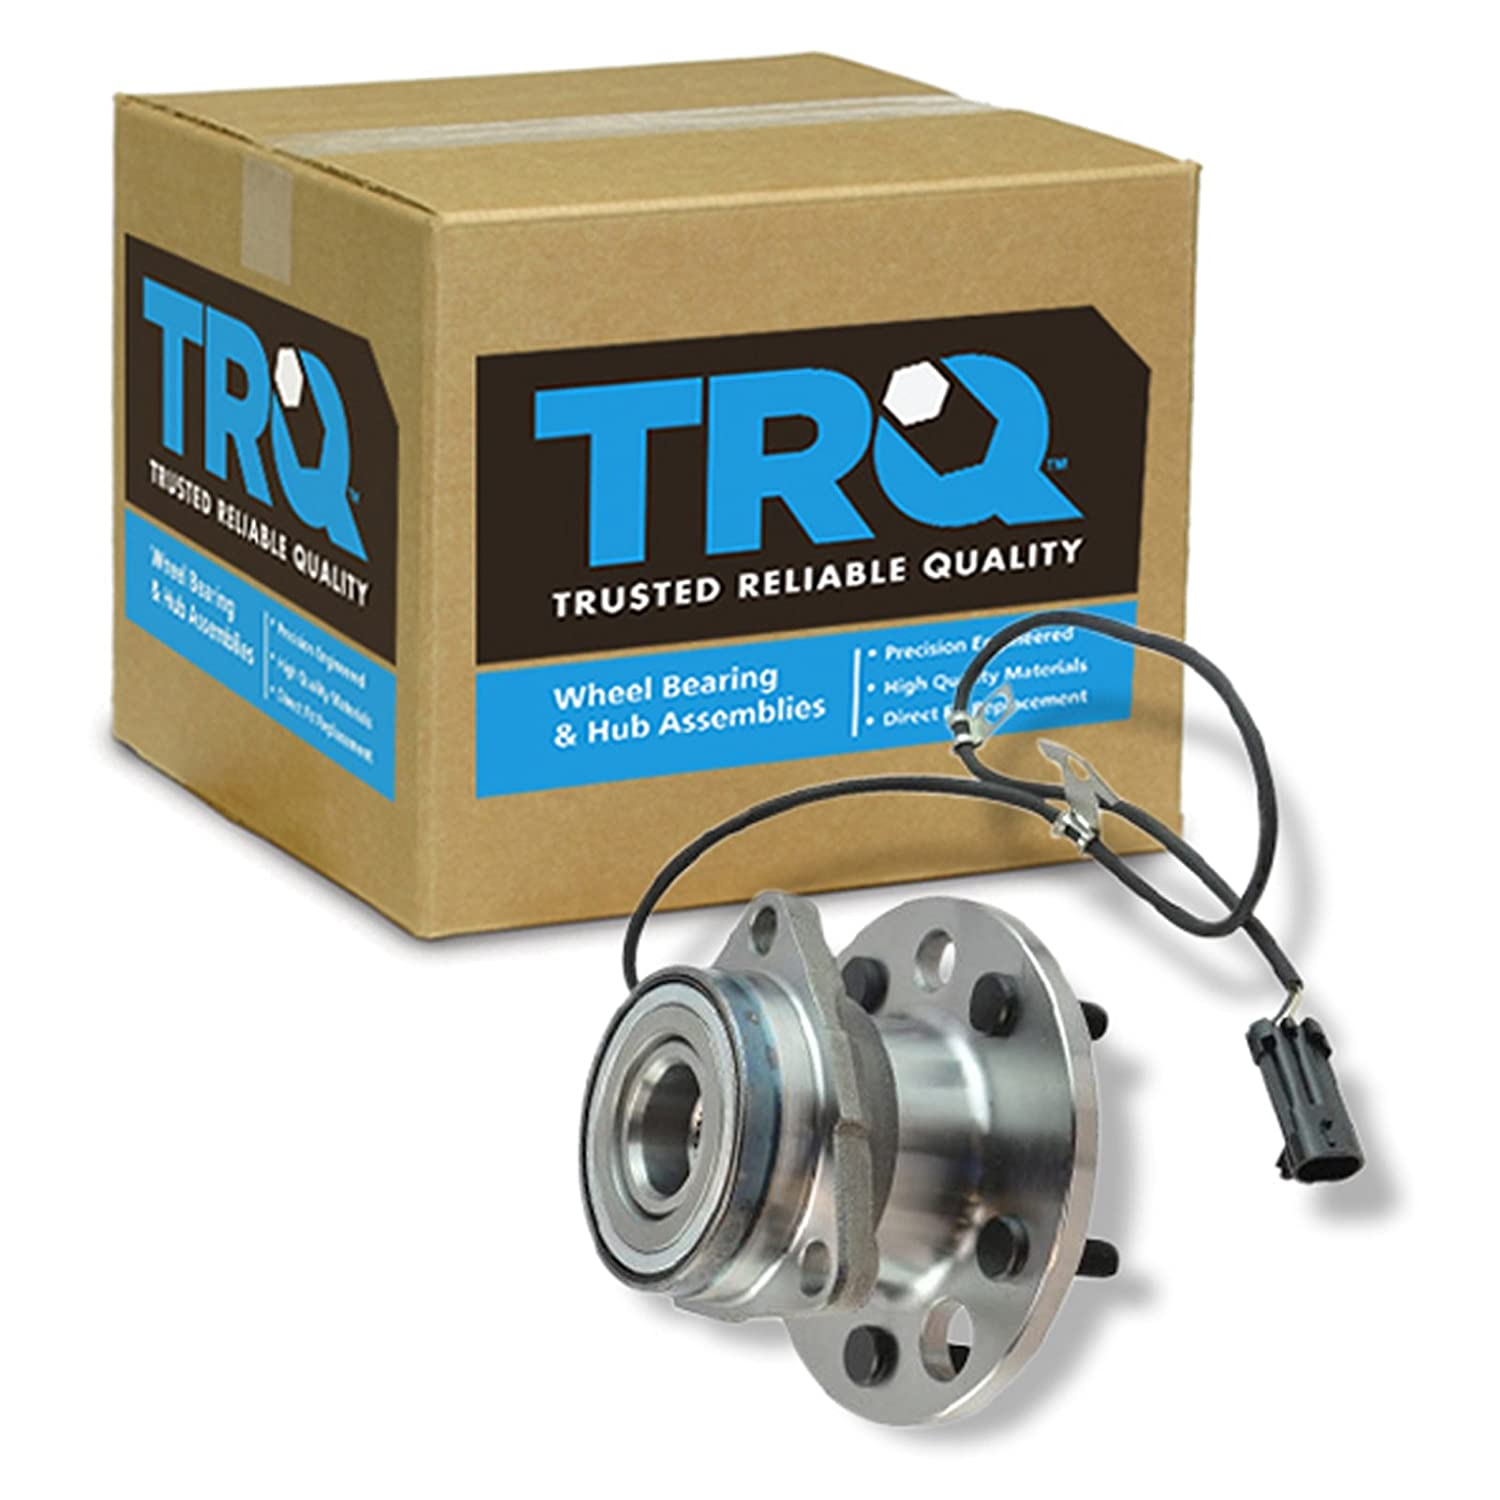 TRQ Front Wheel Hub & Bearing Assembly for 95-02 Chevy Astro Safari AWD